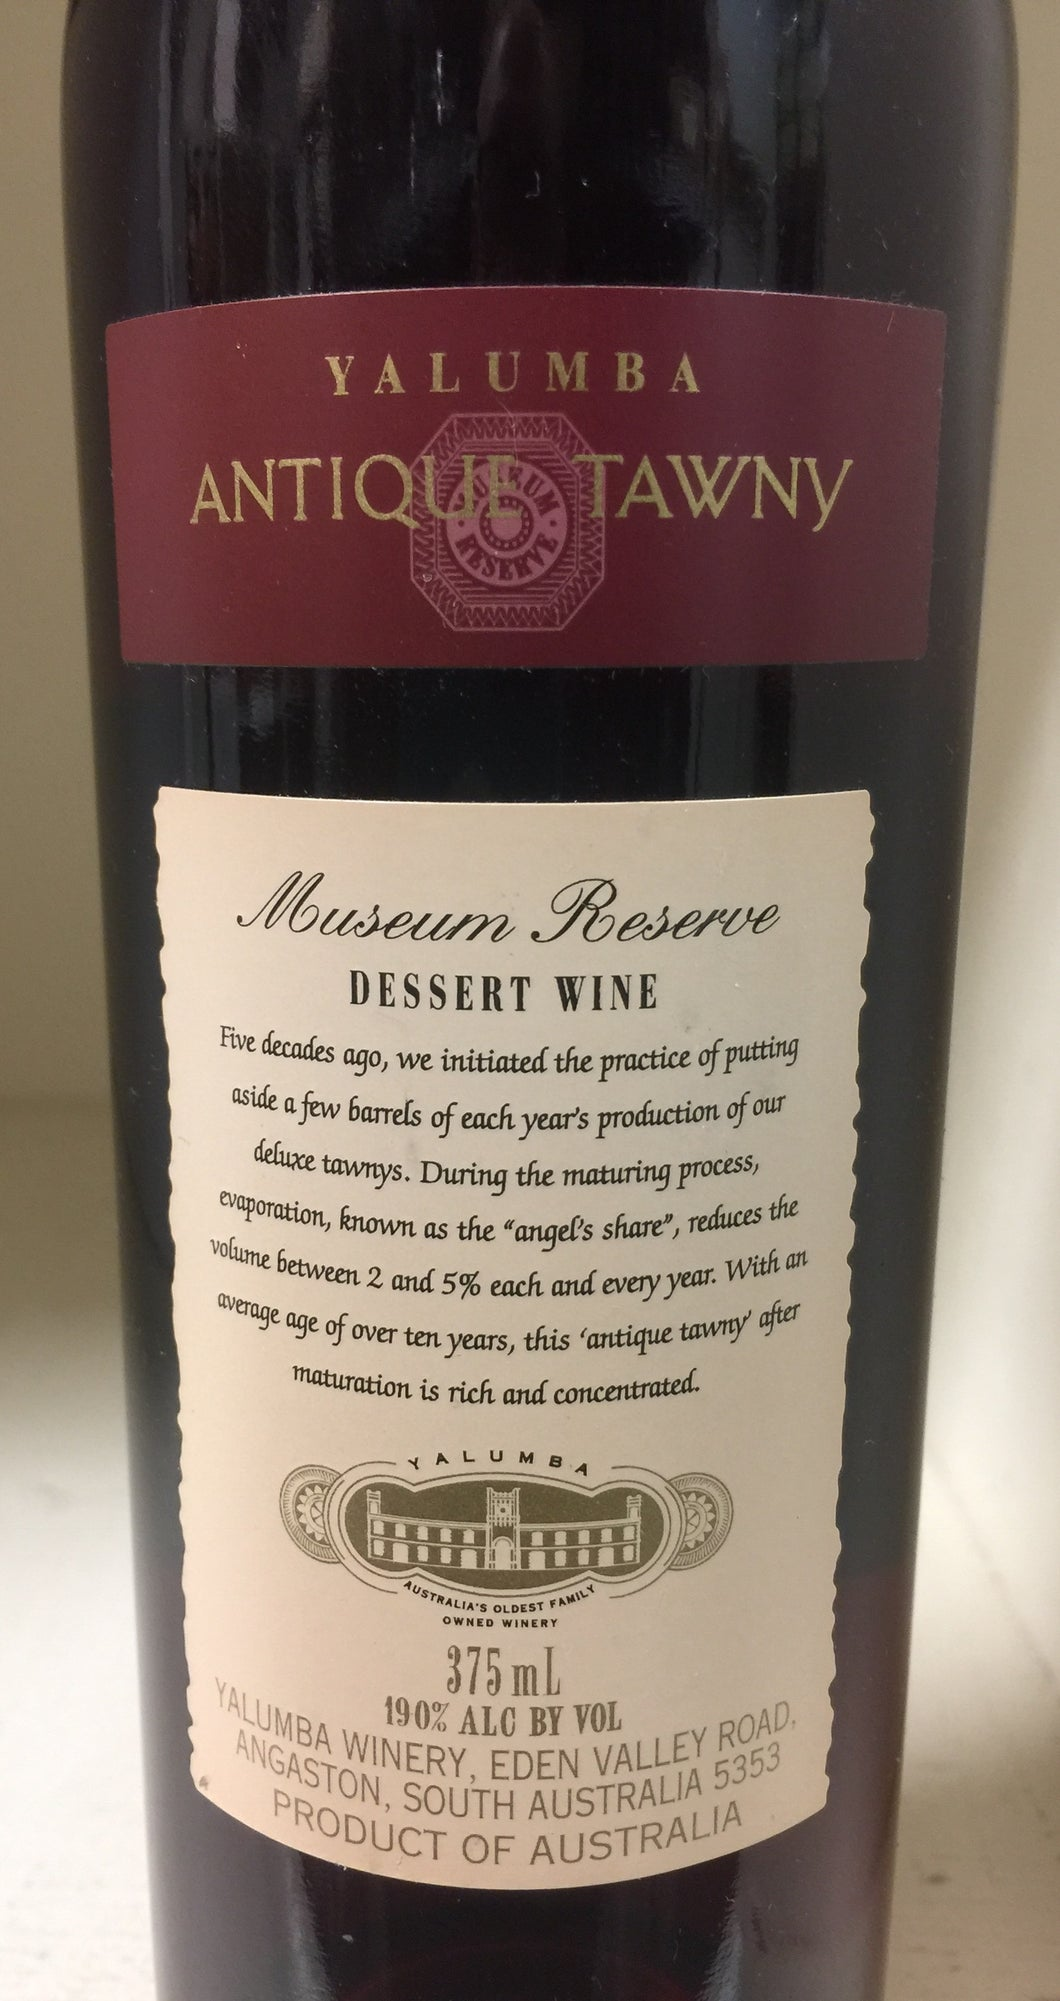 NV Yalumba Museum Reserve Antique Tawny